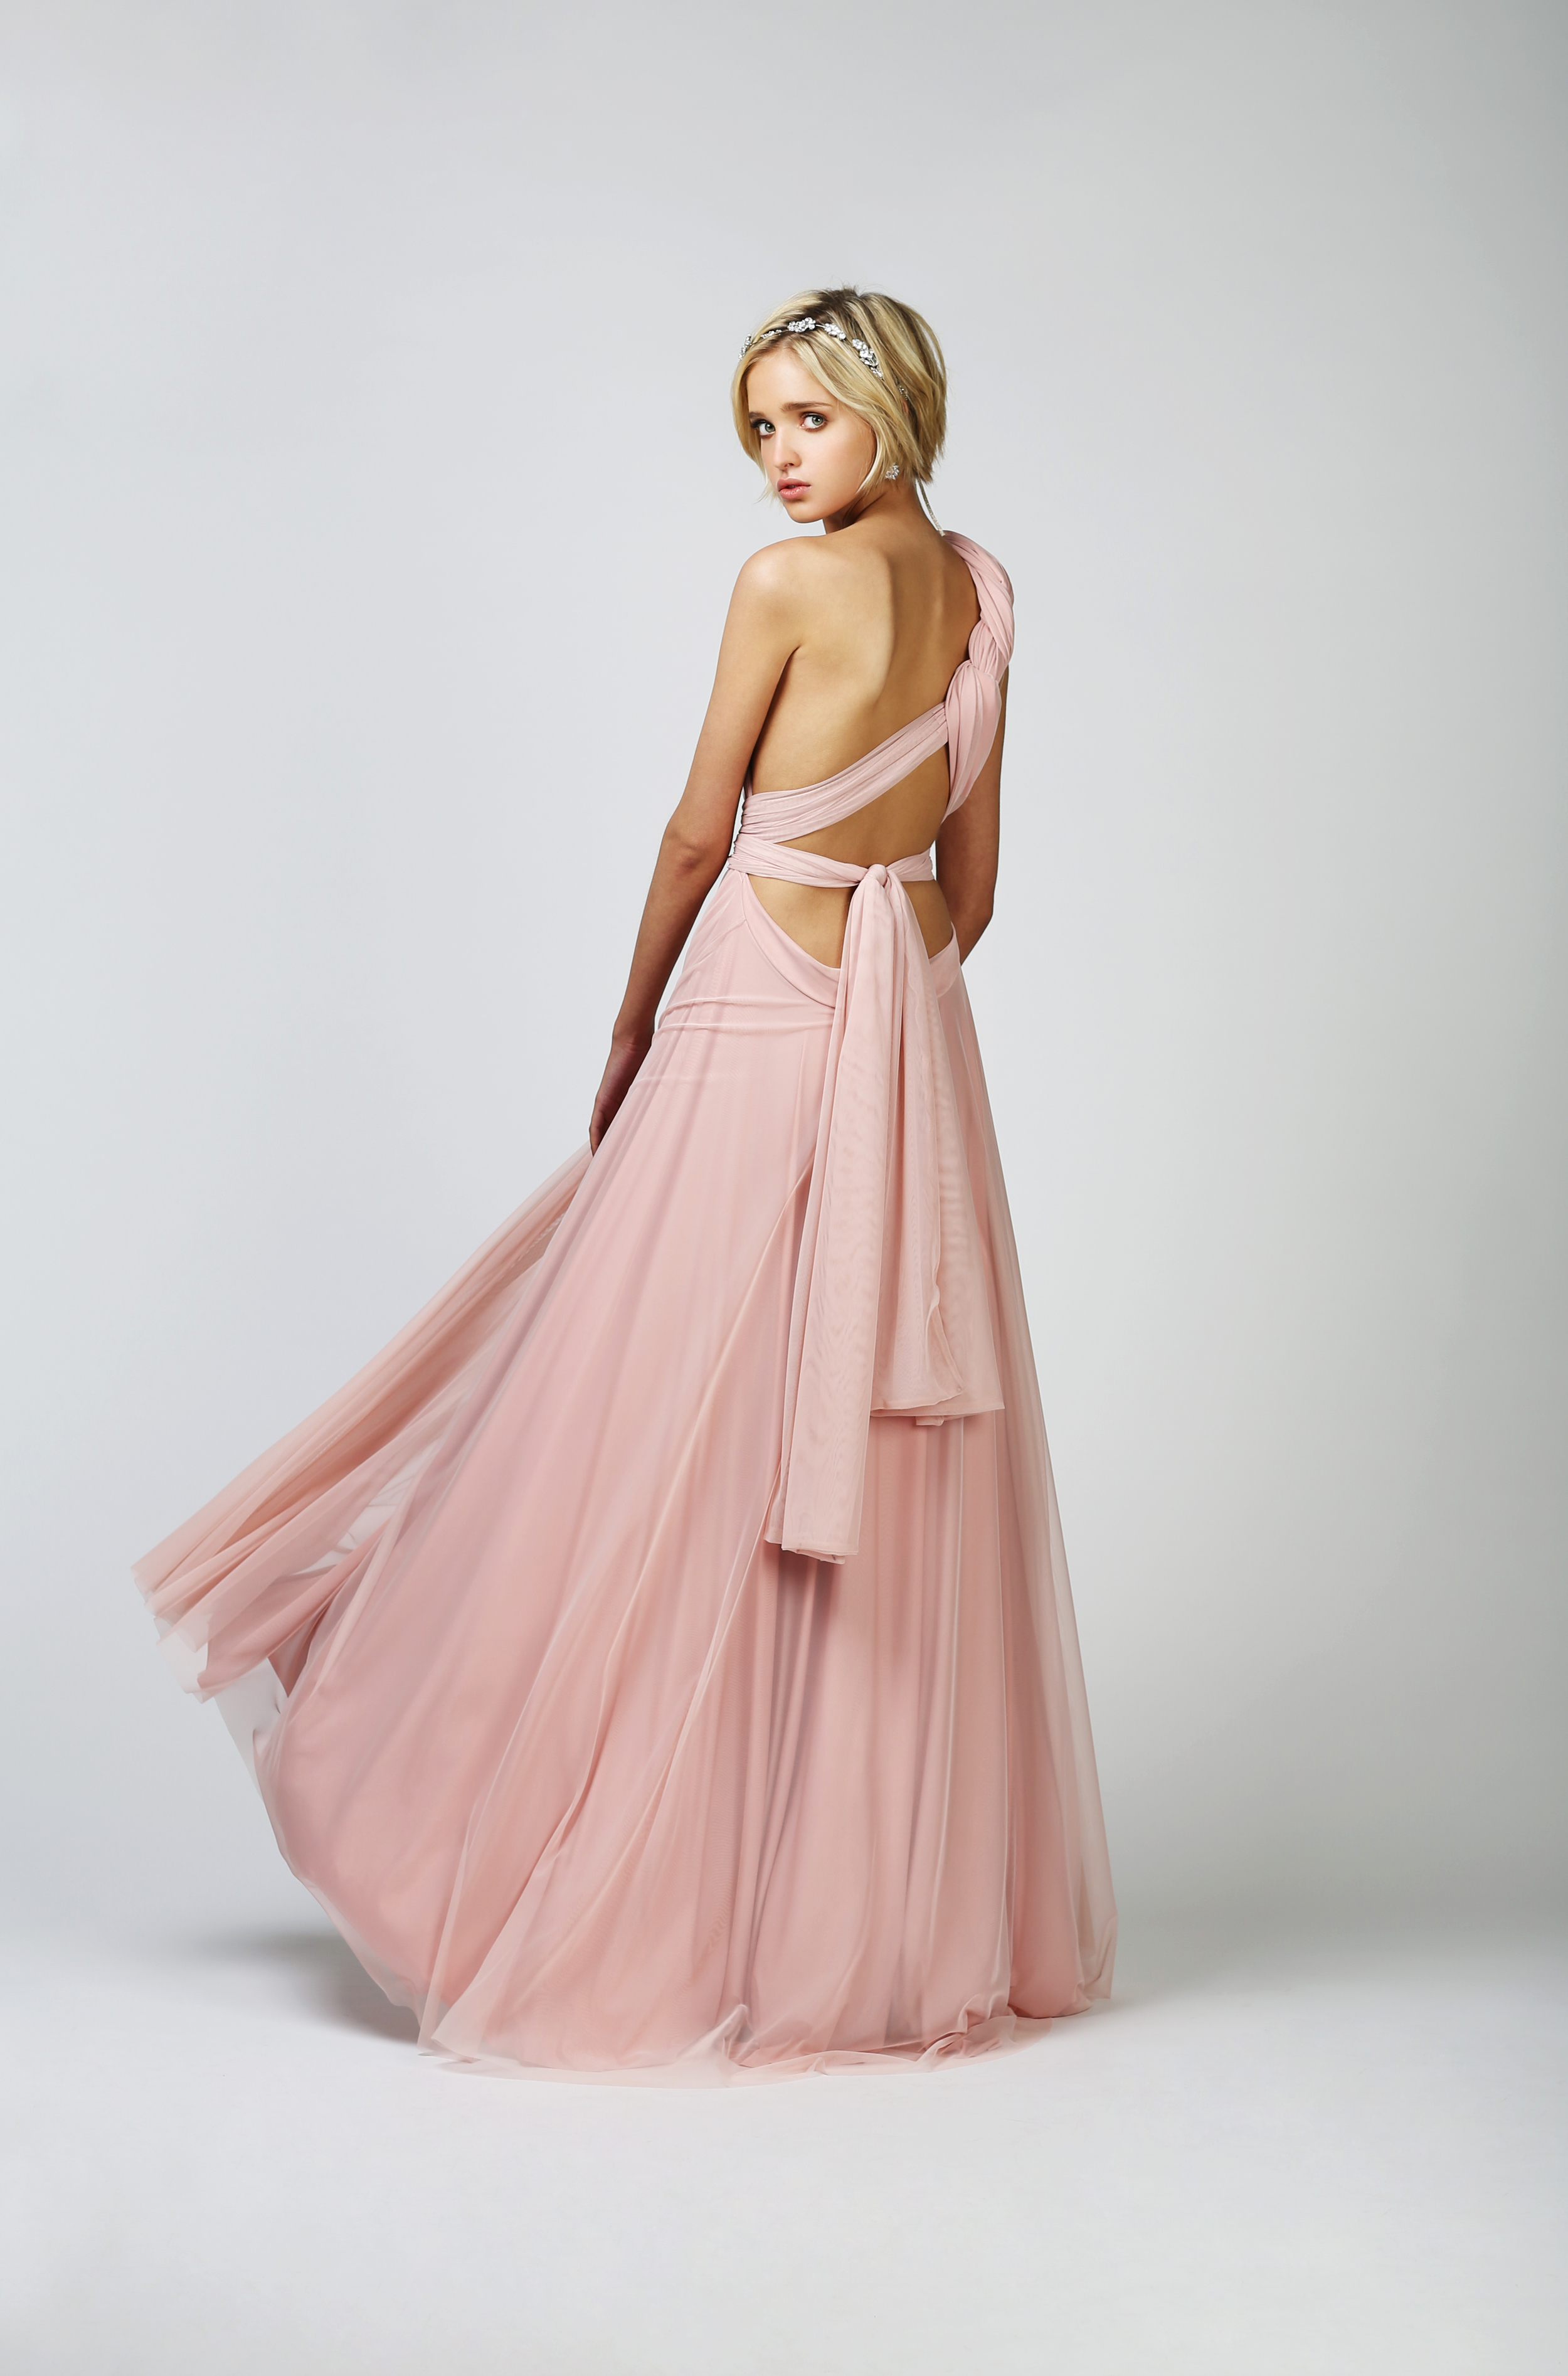 TWO BIRDS TULLE BALL GOWN - BLUSH